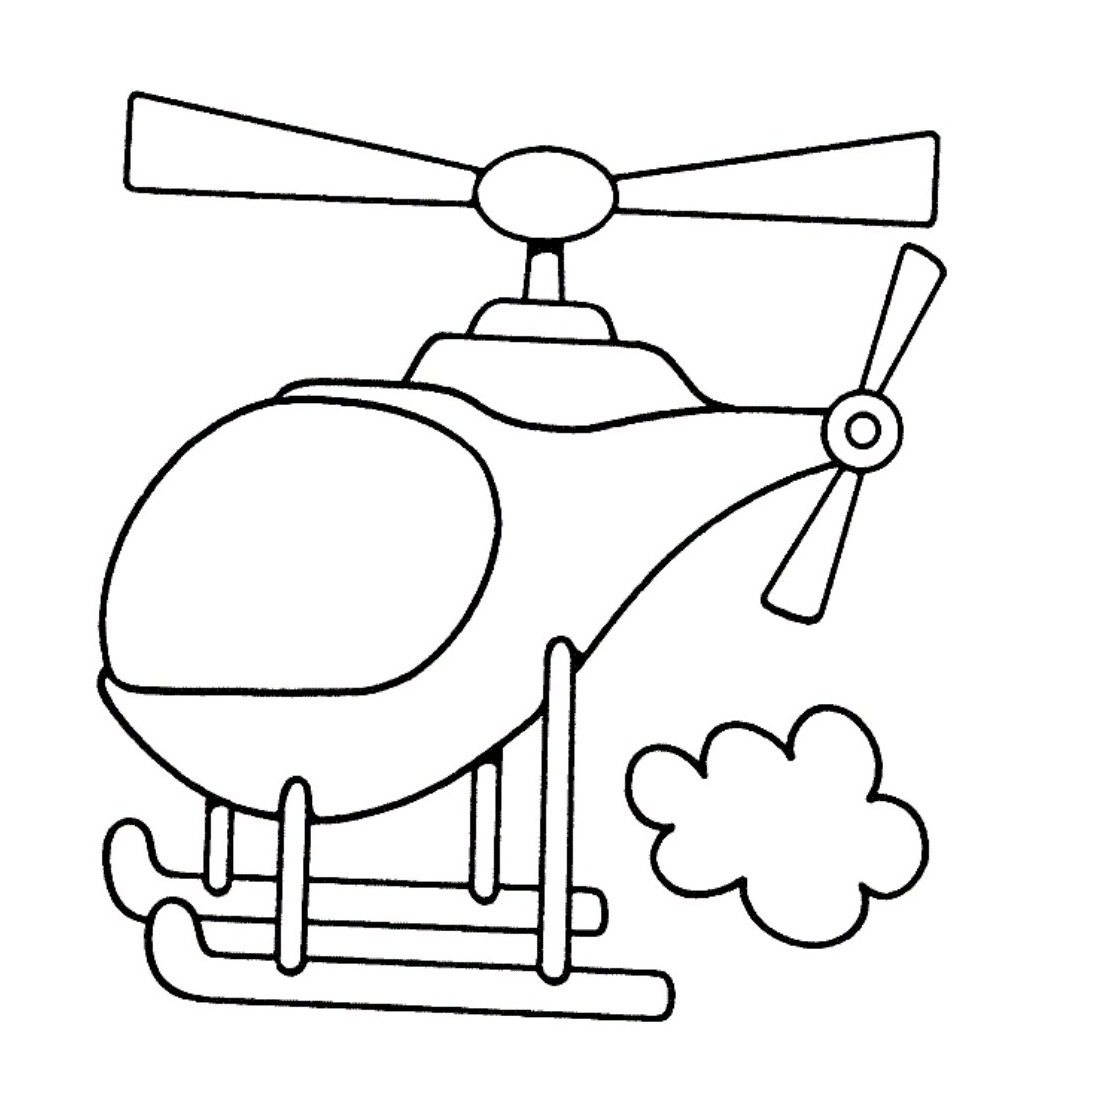 Helicopter coloring pages pictures